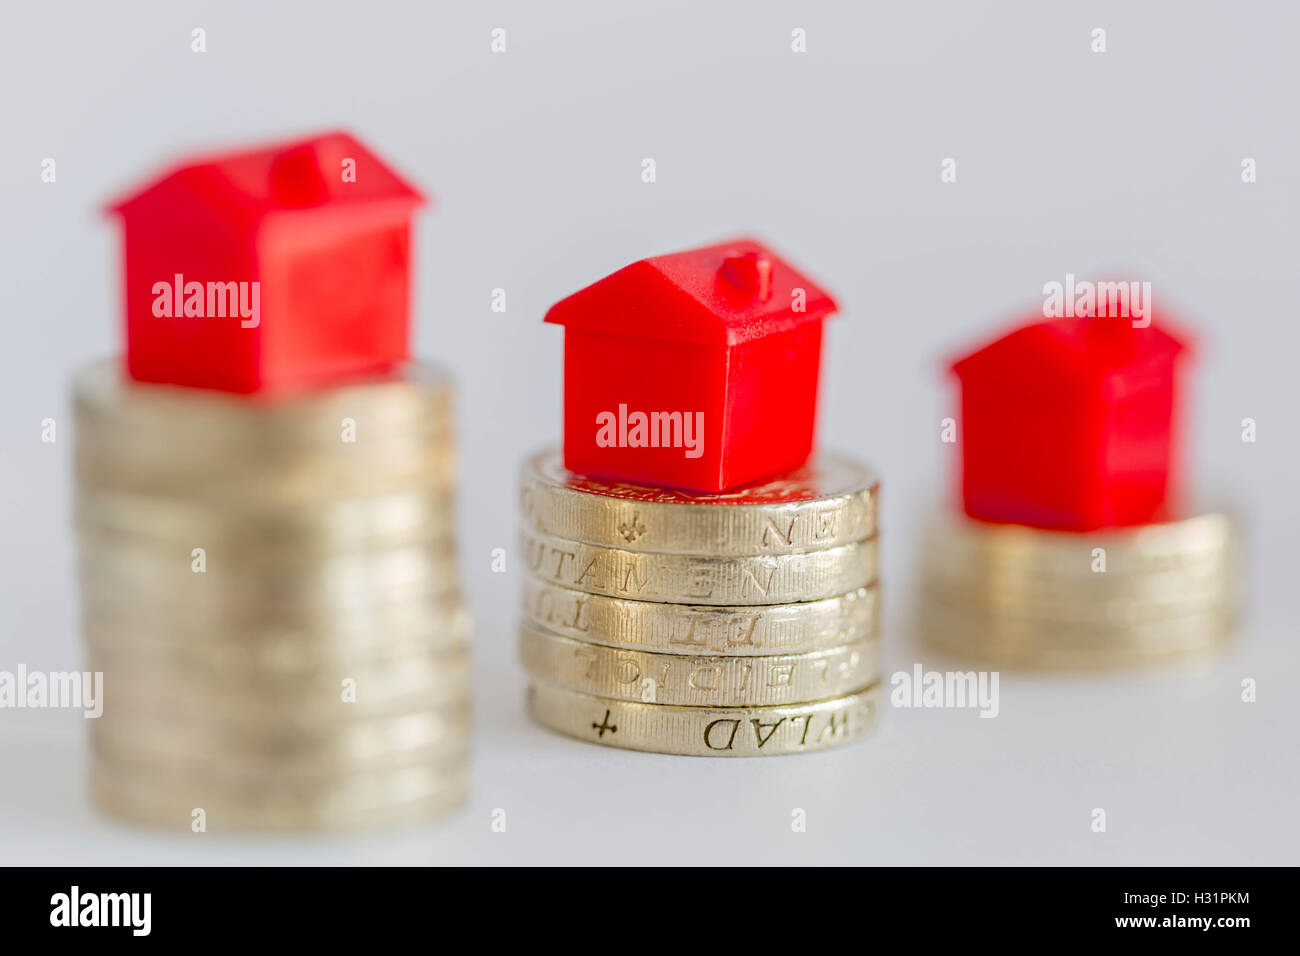 Concept image depicting housing/property markets. Stock Photo